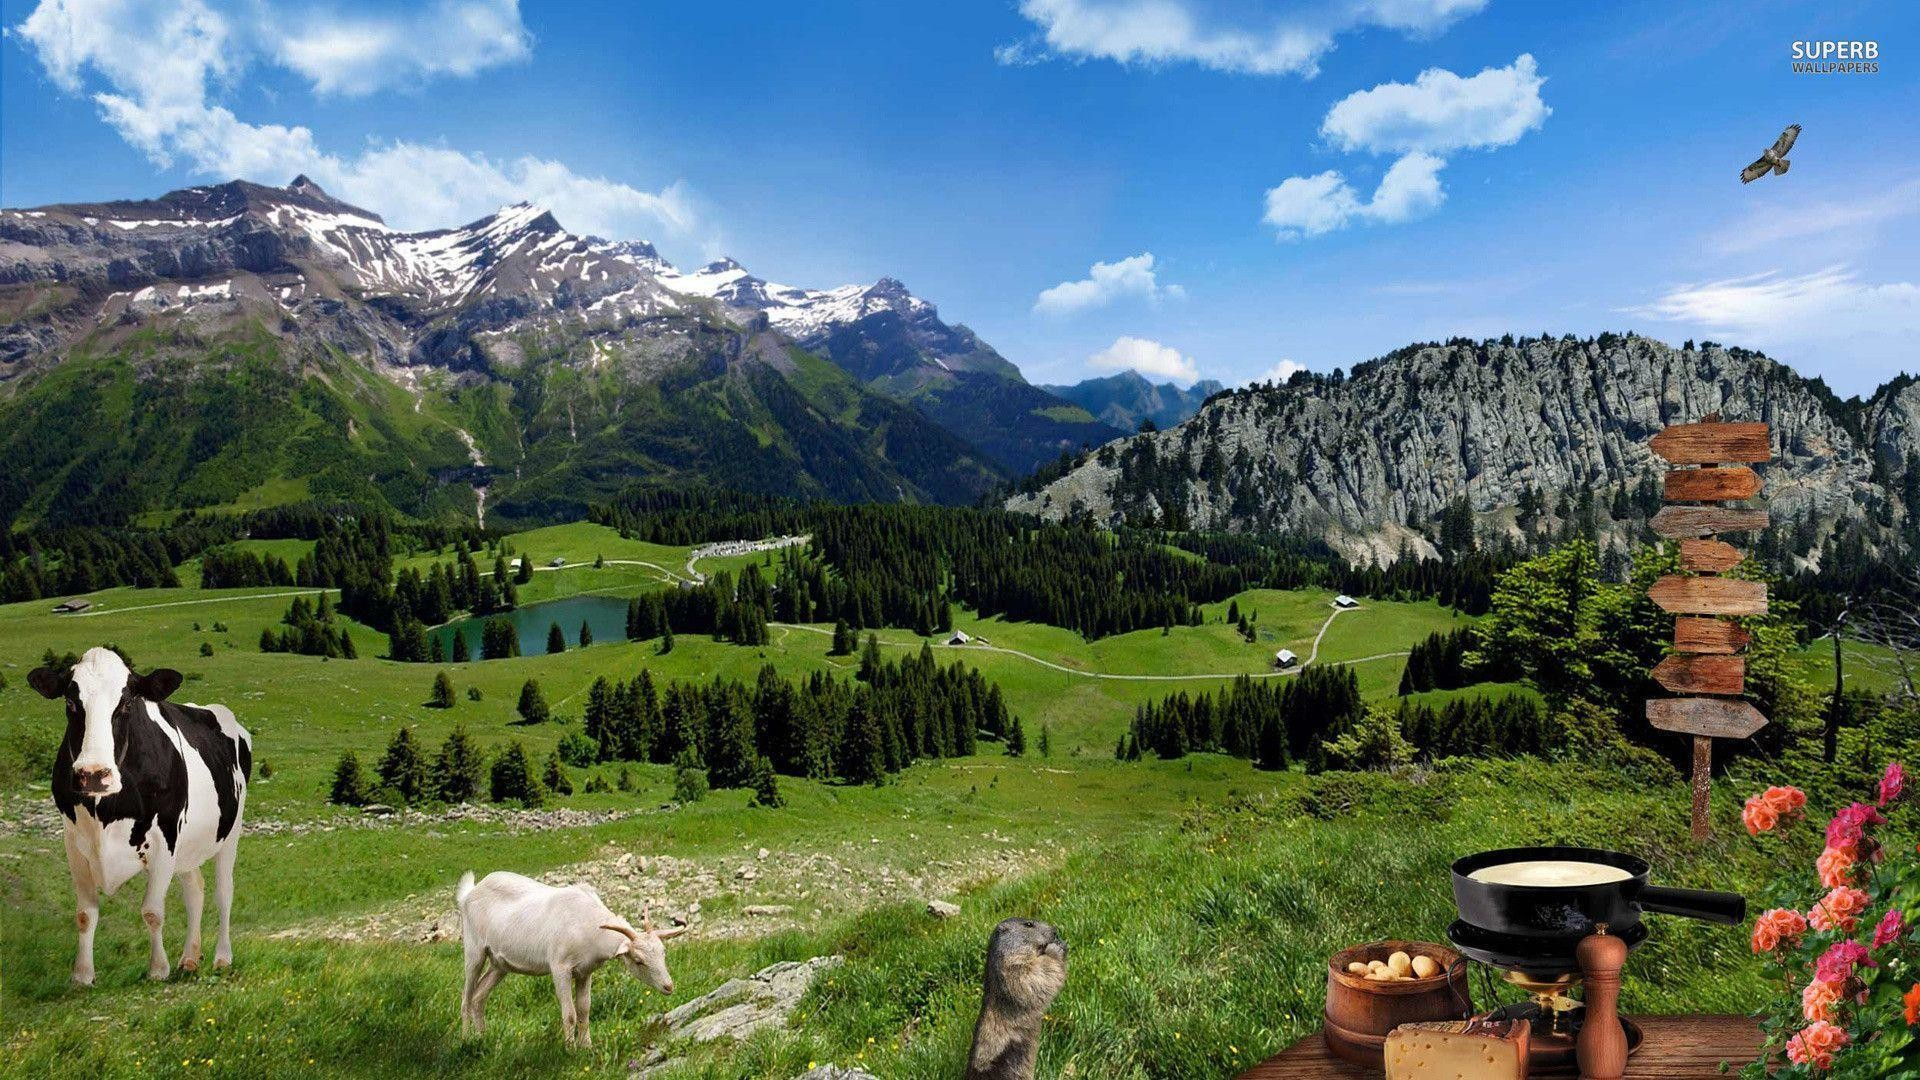 Farm animals on the mountain meadow wallpaper – Animal wallpapers – #